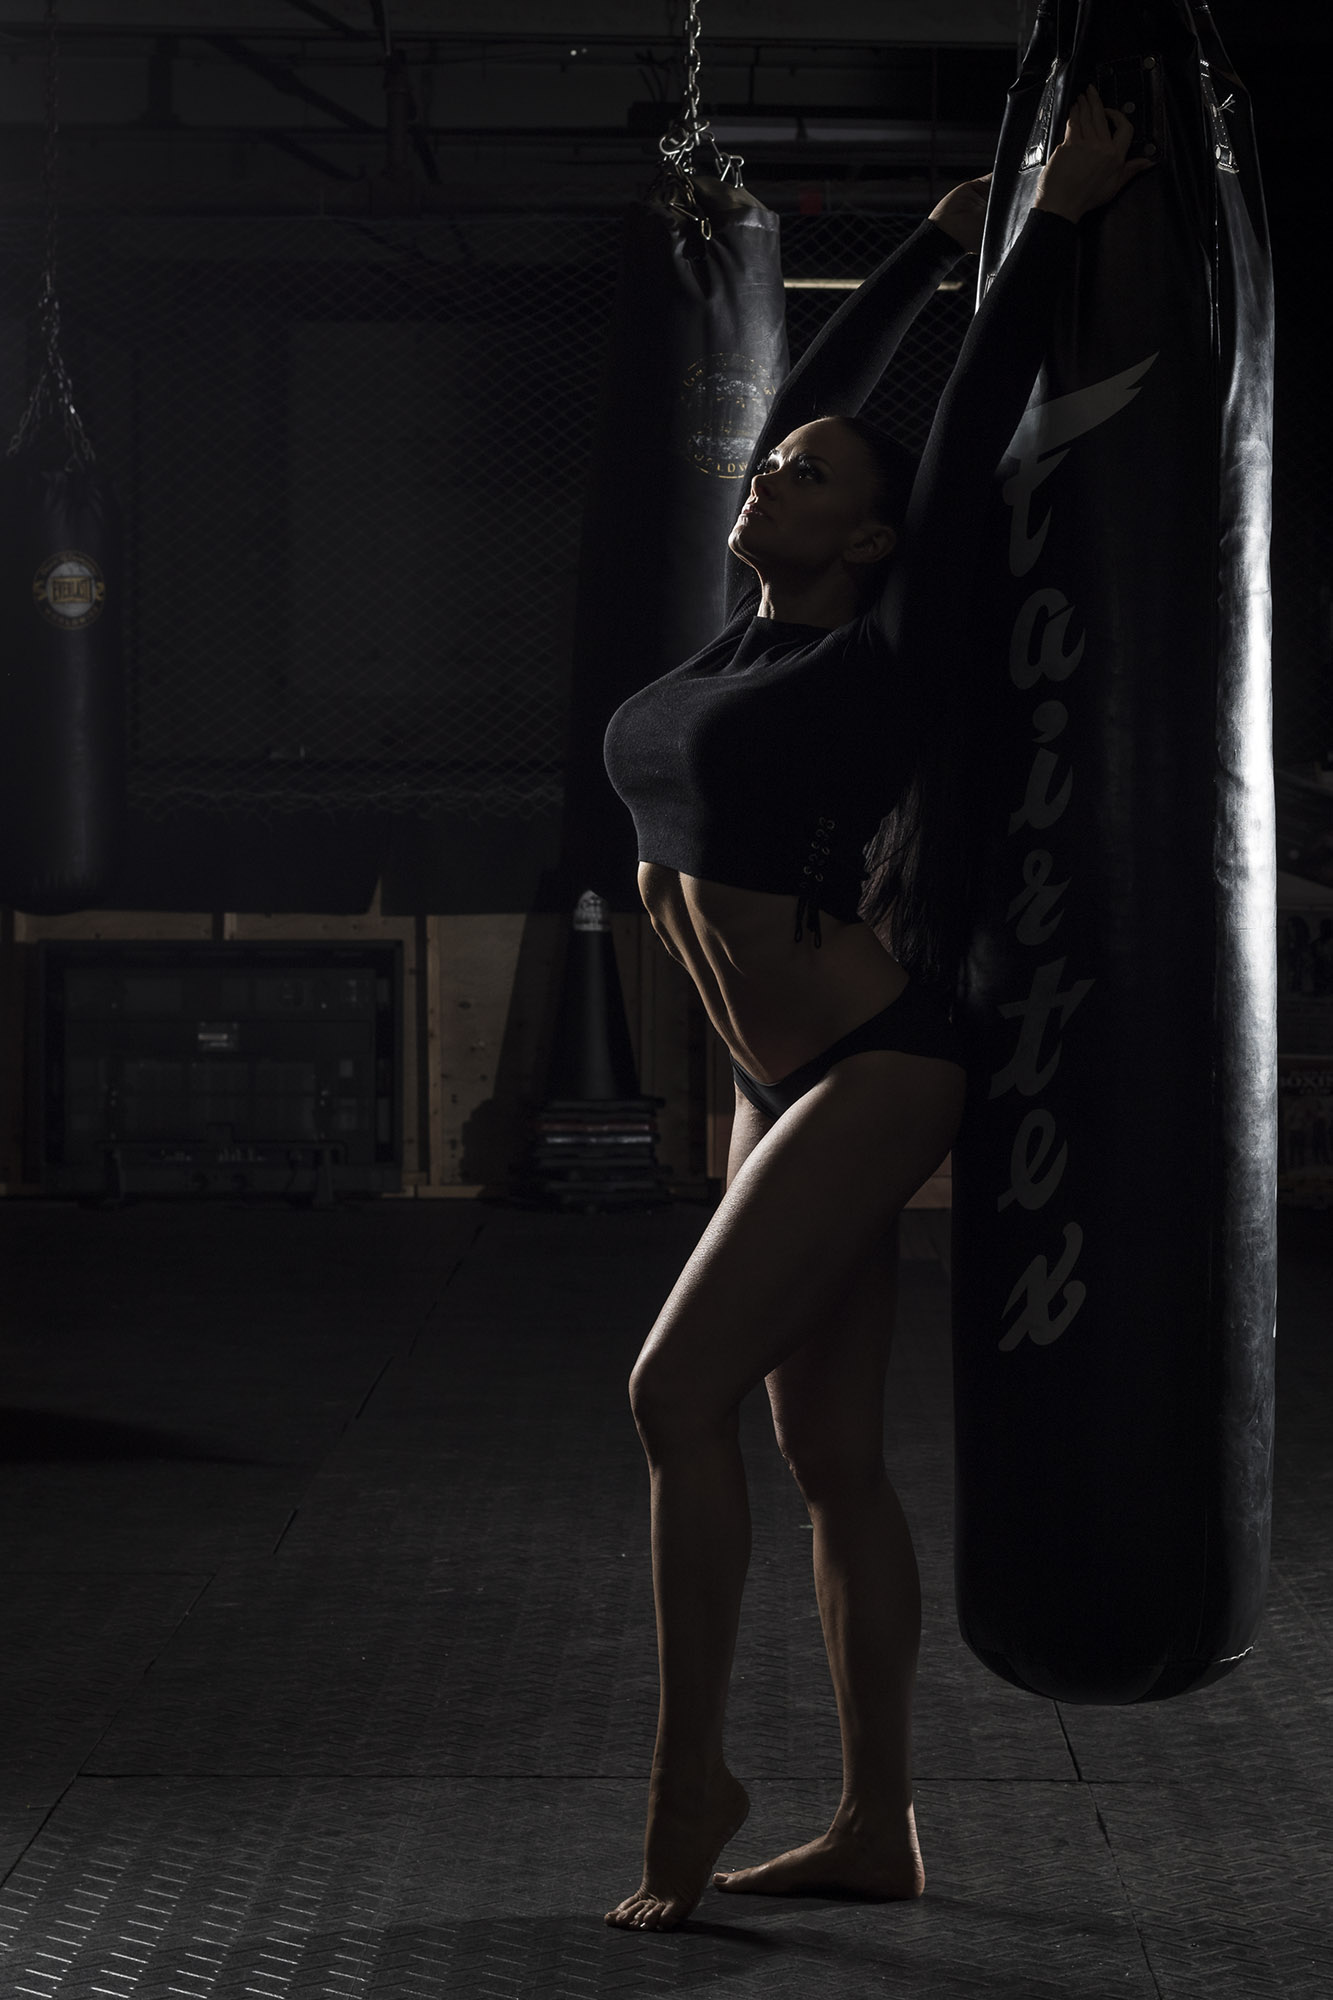 female-fitness-boxing-heavybag.jpg